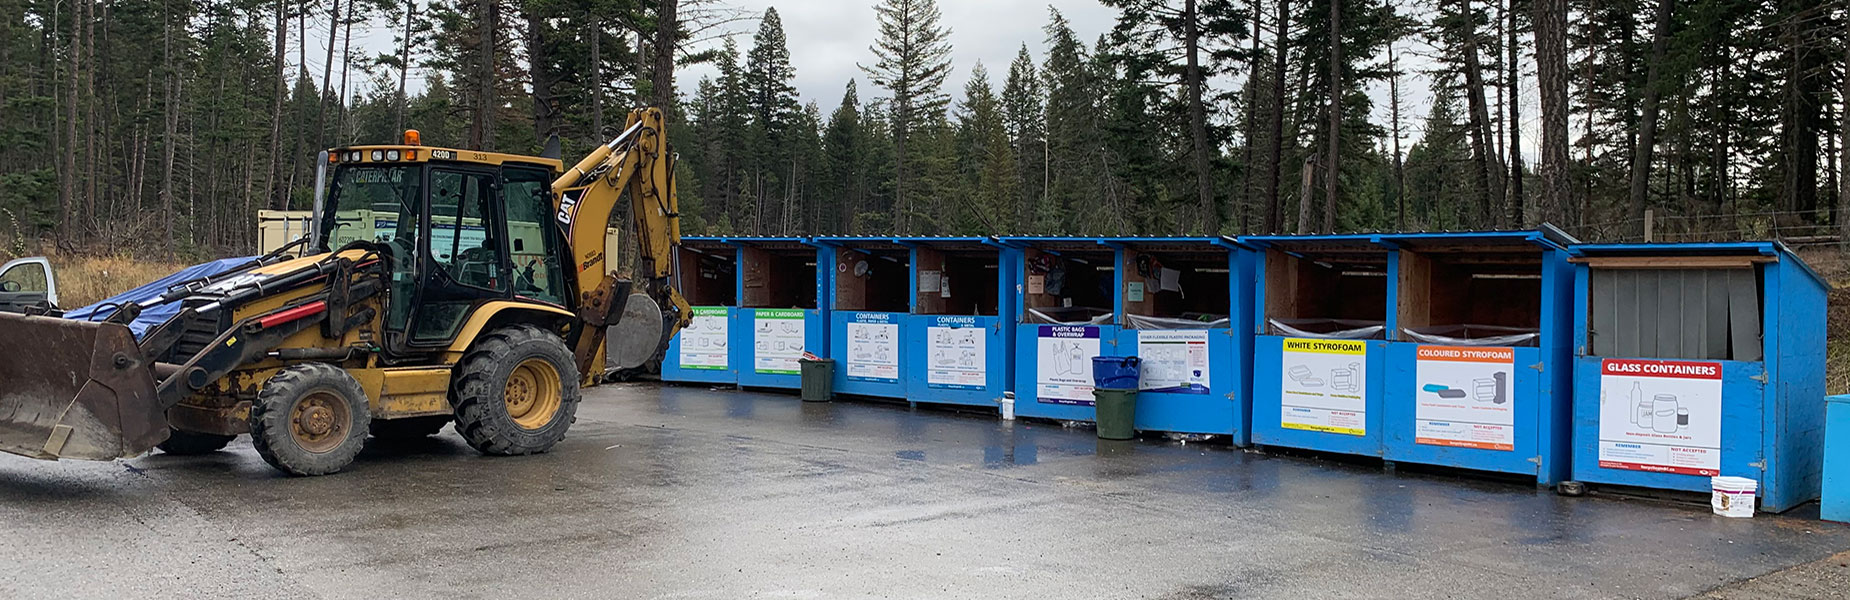 Central Cariboo Disposal Services (2001) Ltd. provides waste and recycle services throughout the Central and South Cariboo-Chilcotin areas of British Columbia as well as Merritt.